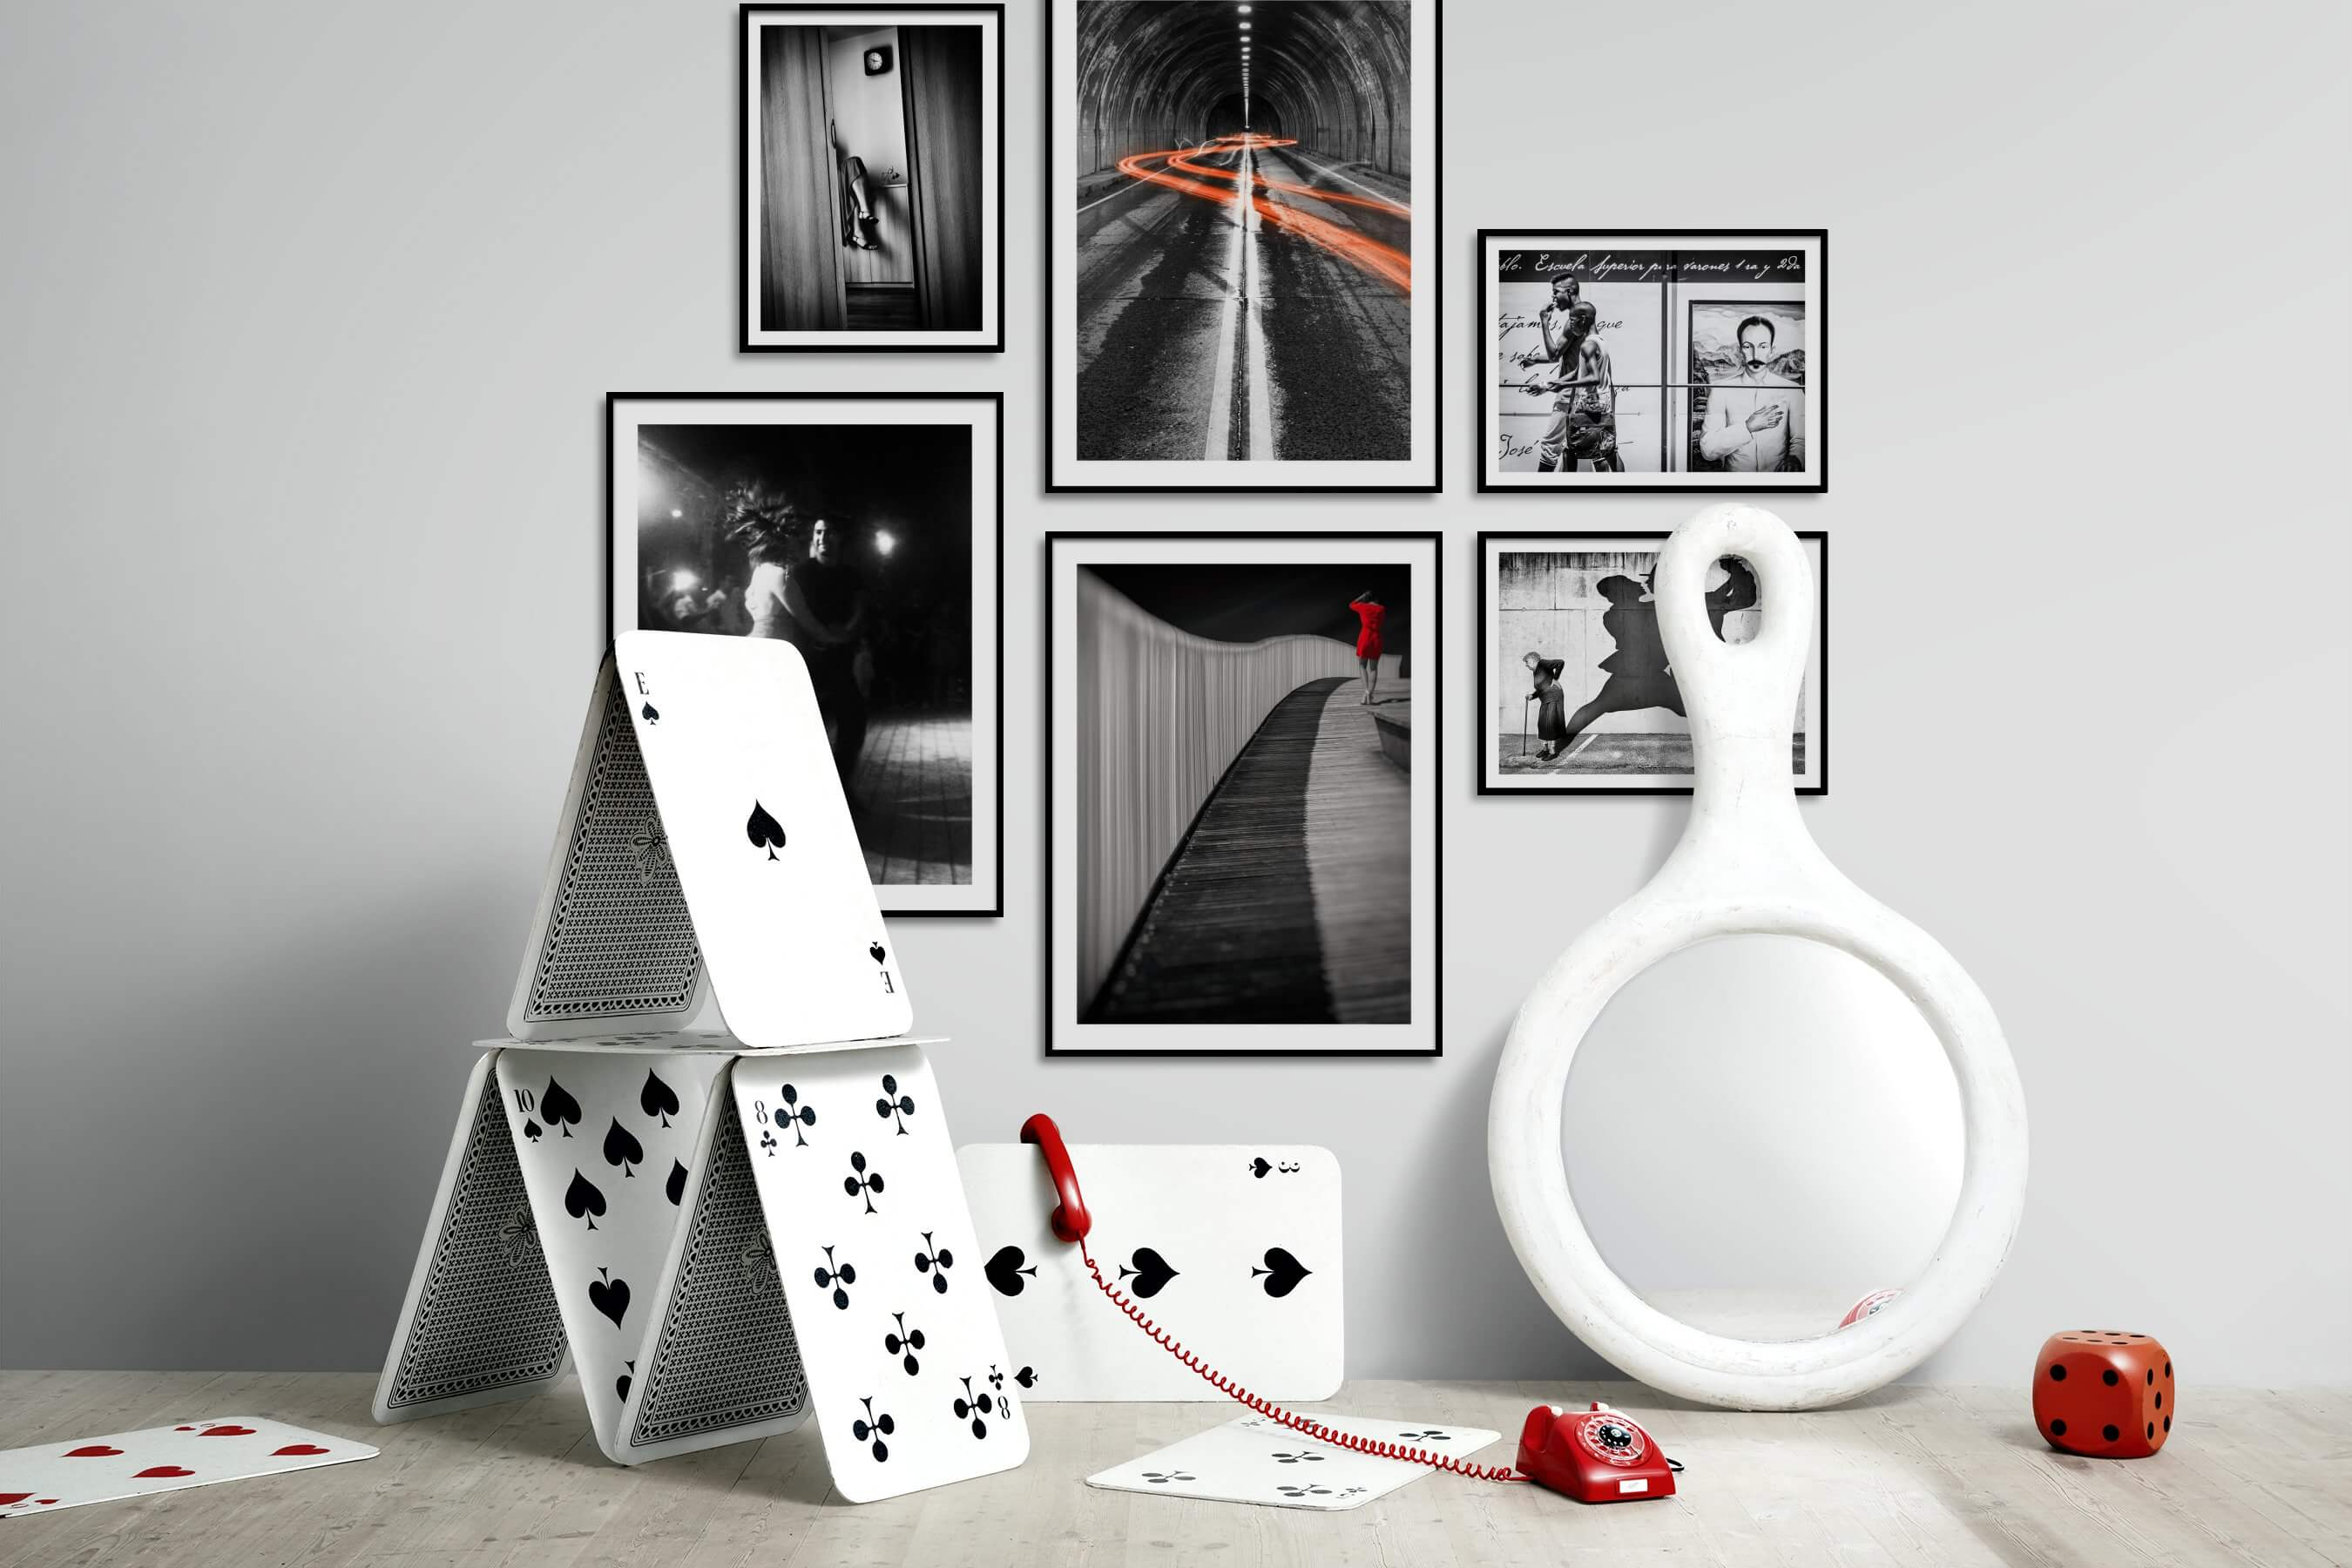 Gallery wall idea with six framed pictures arranged on a wall depicting Artsy, Black & White, For the Moderate, City Life, and Fashion & Beauty